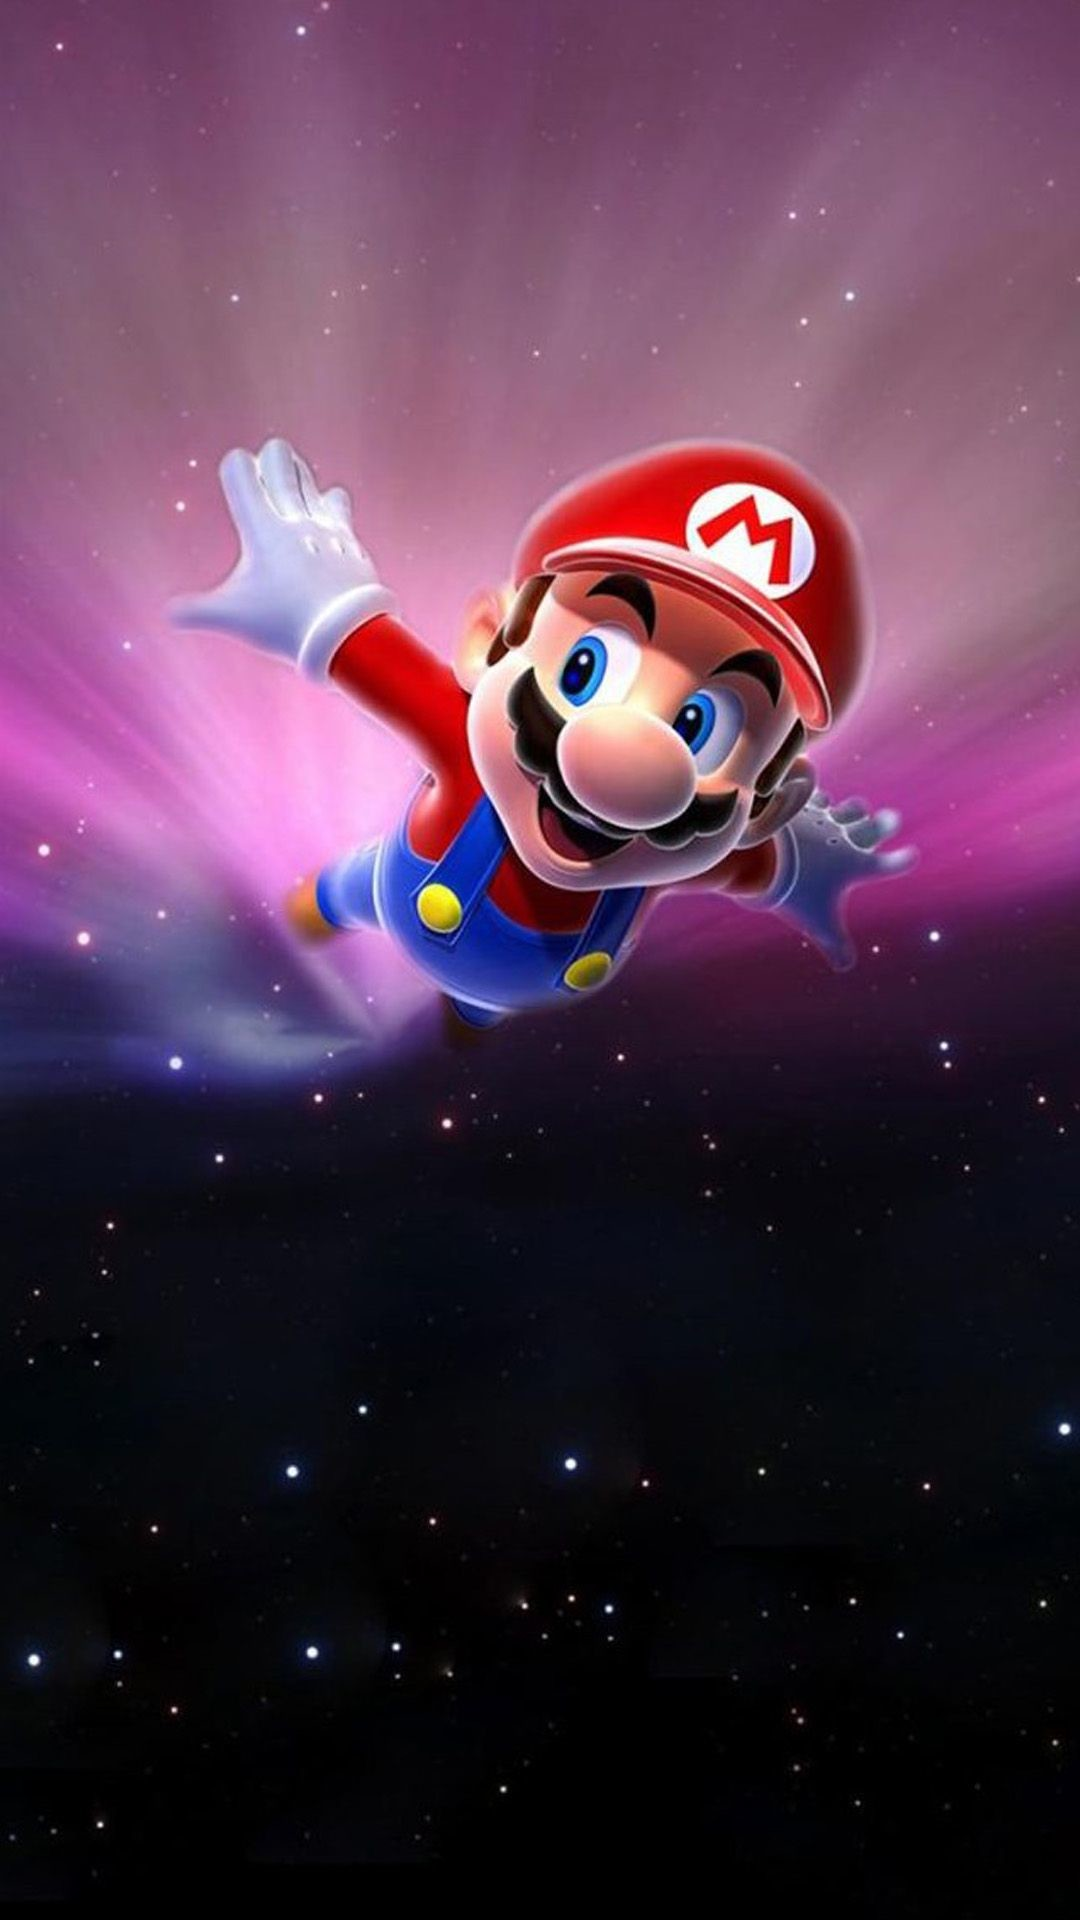 1080x1920 Super Mario Flying Poster Background #wallpaper For the kids :)